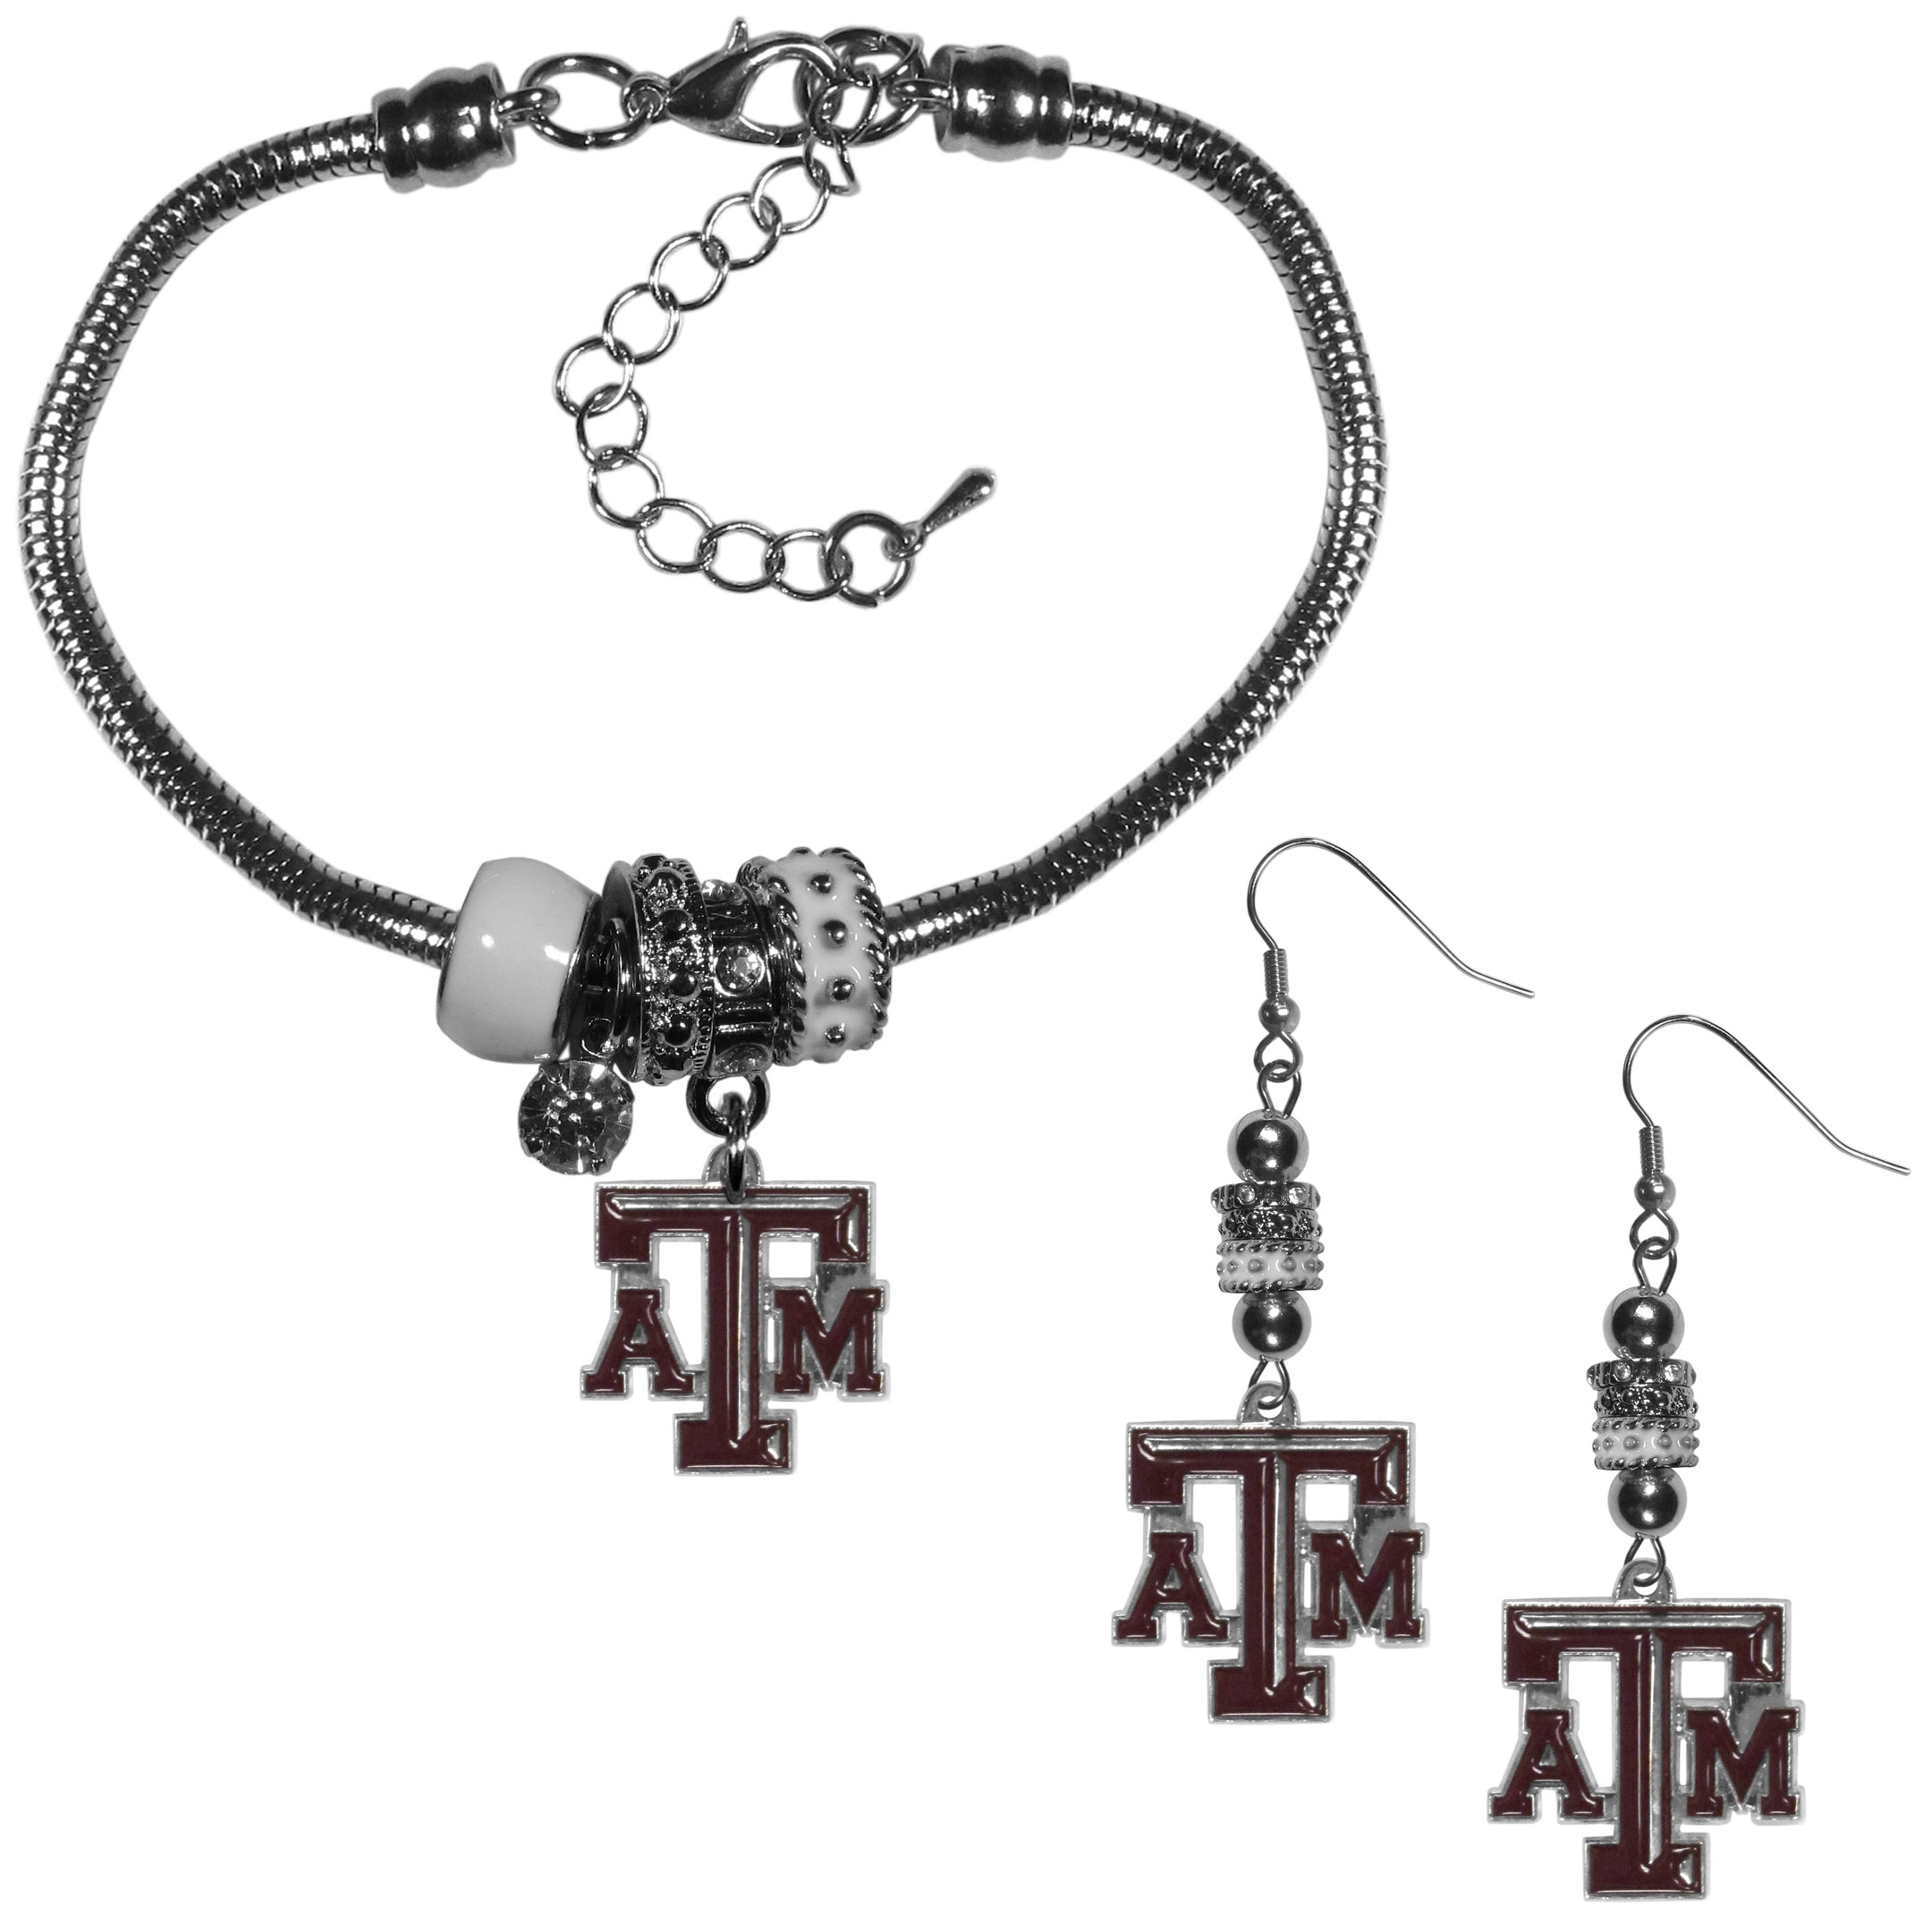 Texas A and M Aggies Euro Bead Earrings and Bracelet Set - We combine the popular Euro bead style with your love of the Texas A & M Aggies with this beautiful jewelry set that includes earrings and a matching bracelet. The stylish earrings feature hypoallergenic, nickel free fishhook posts and 3 team colored Euro beads and a metal team charm. The matching snake chain bracelet is 7.5 inches long with a 2 inch extender and 4 Euro beads with a rhinestone charm and team charm.